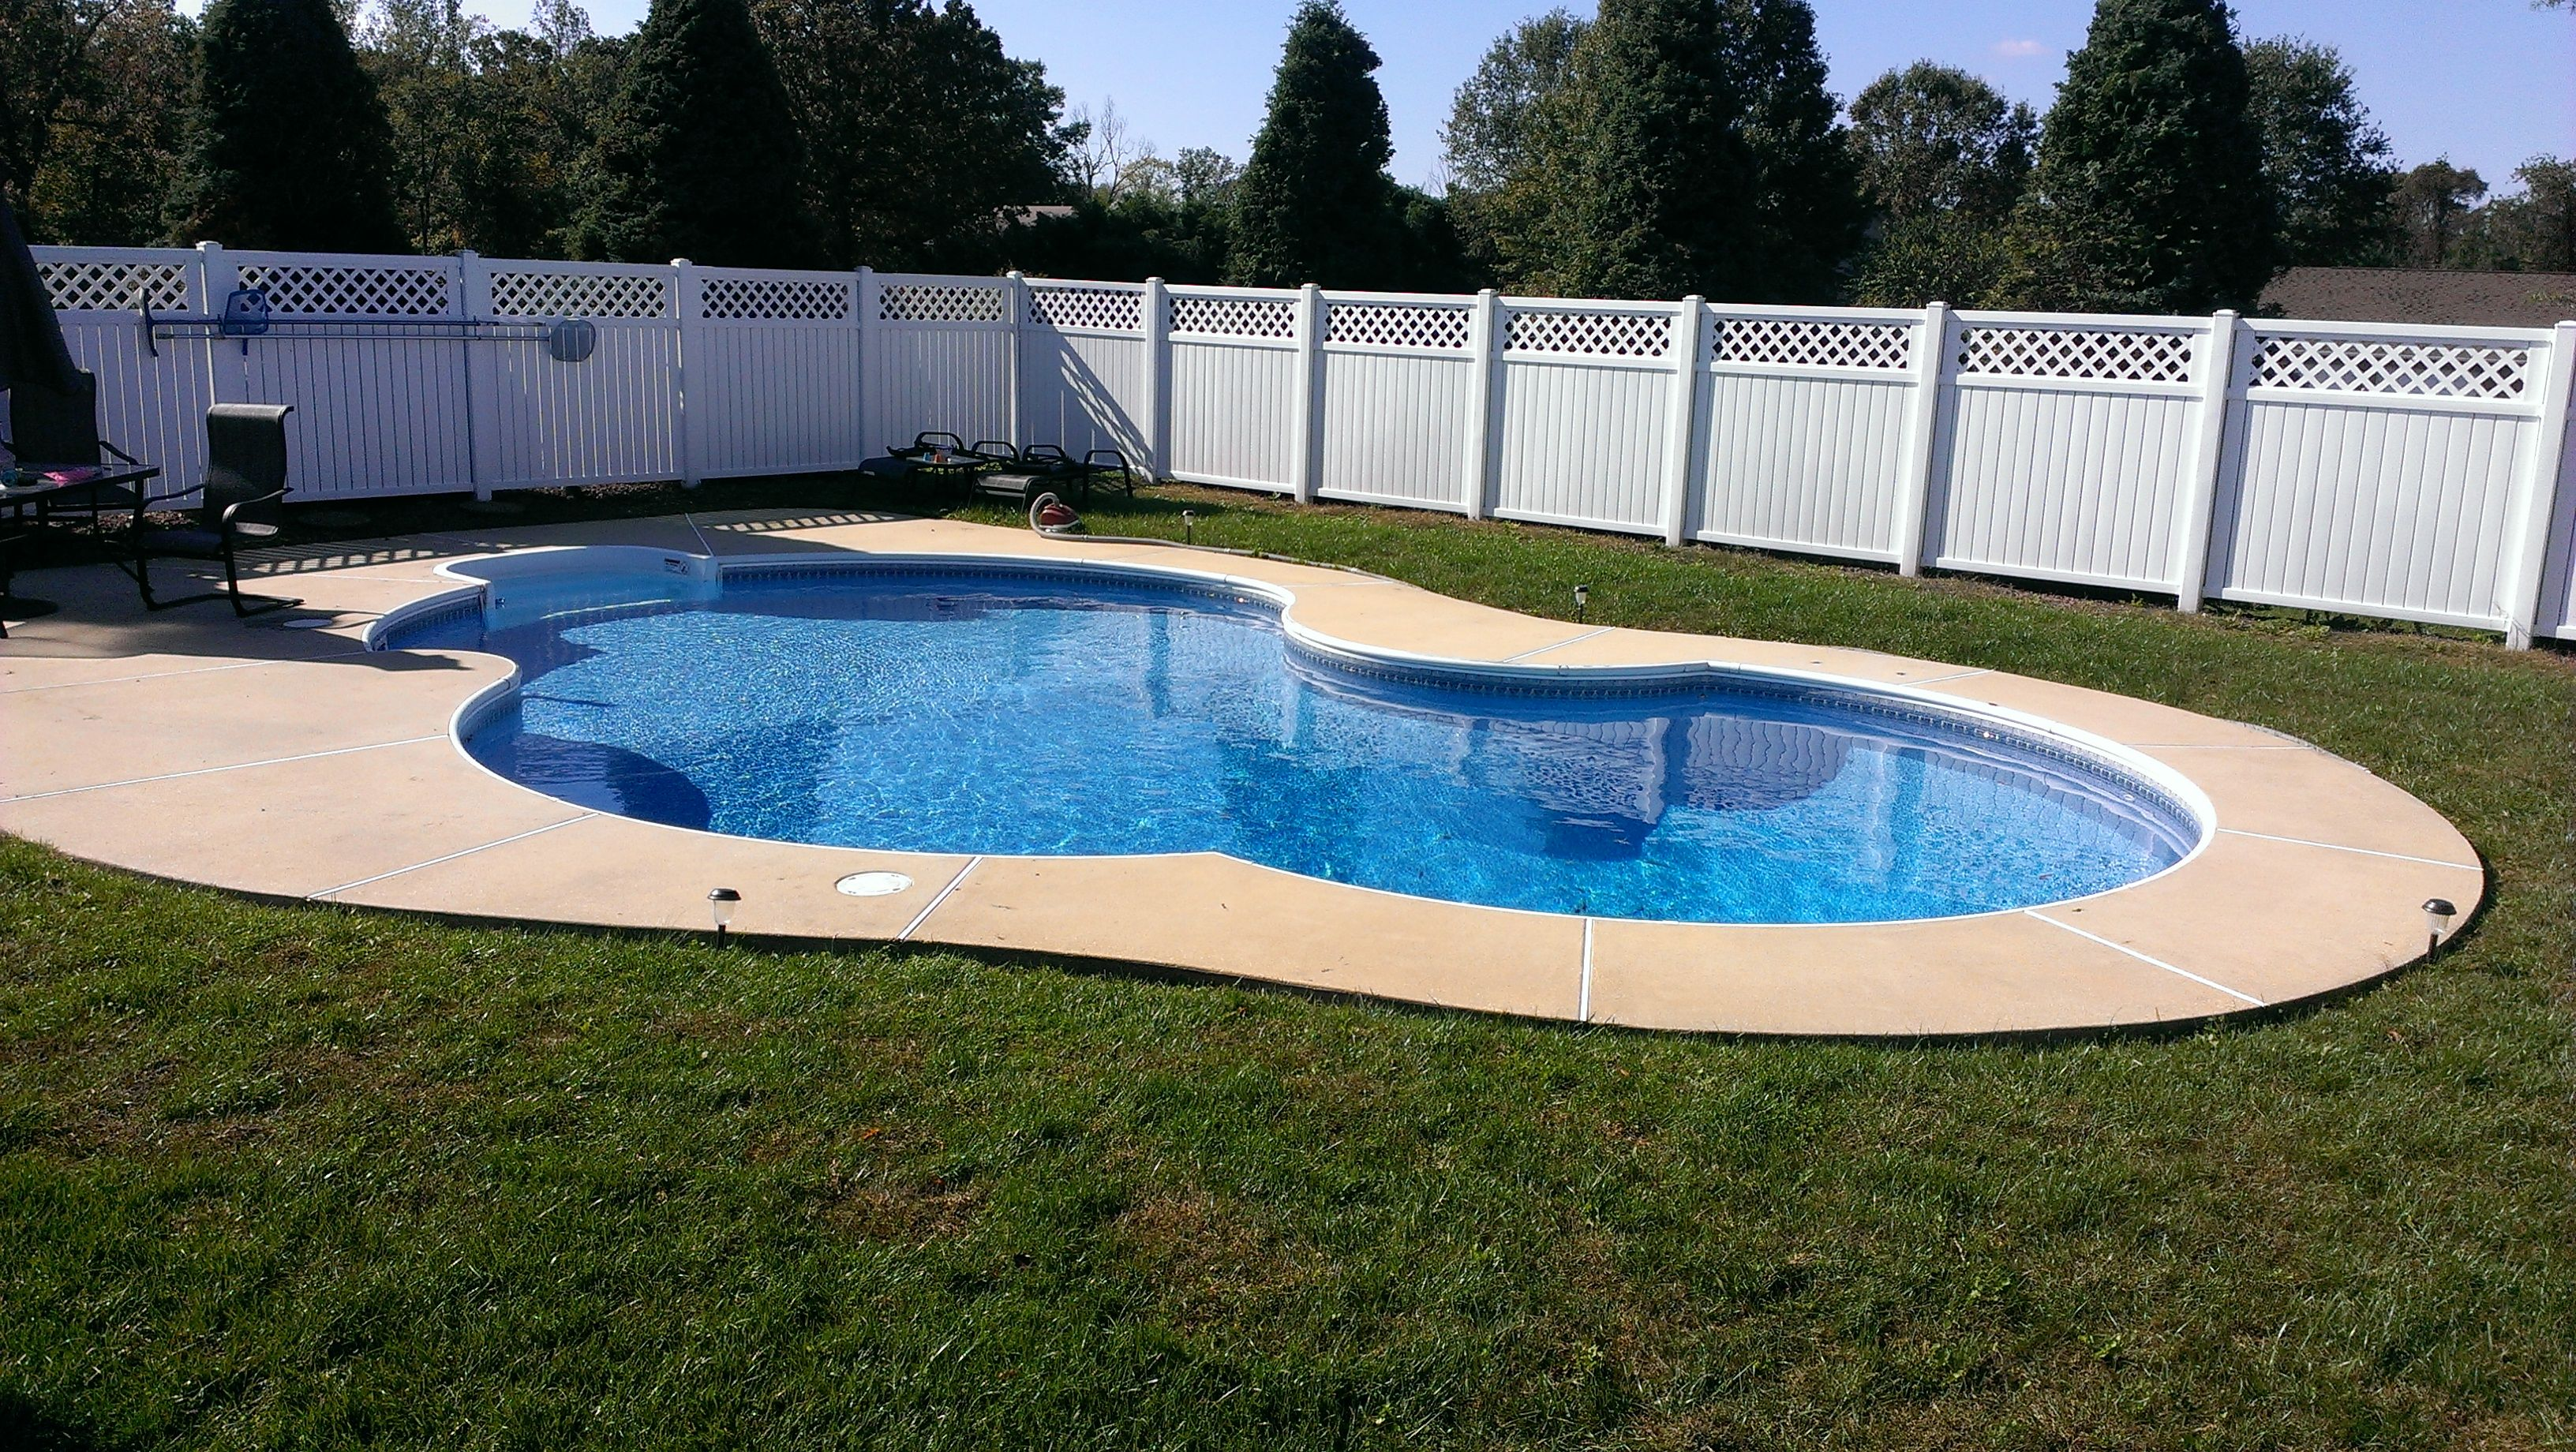 Freeform Swimming Pool Broom Finished Concrete With Privacy Fence Recently Completed